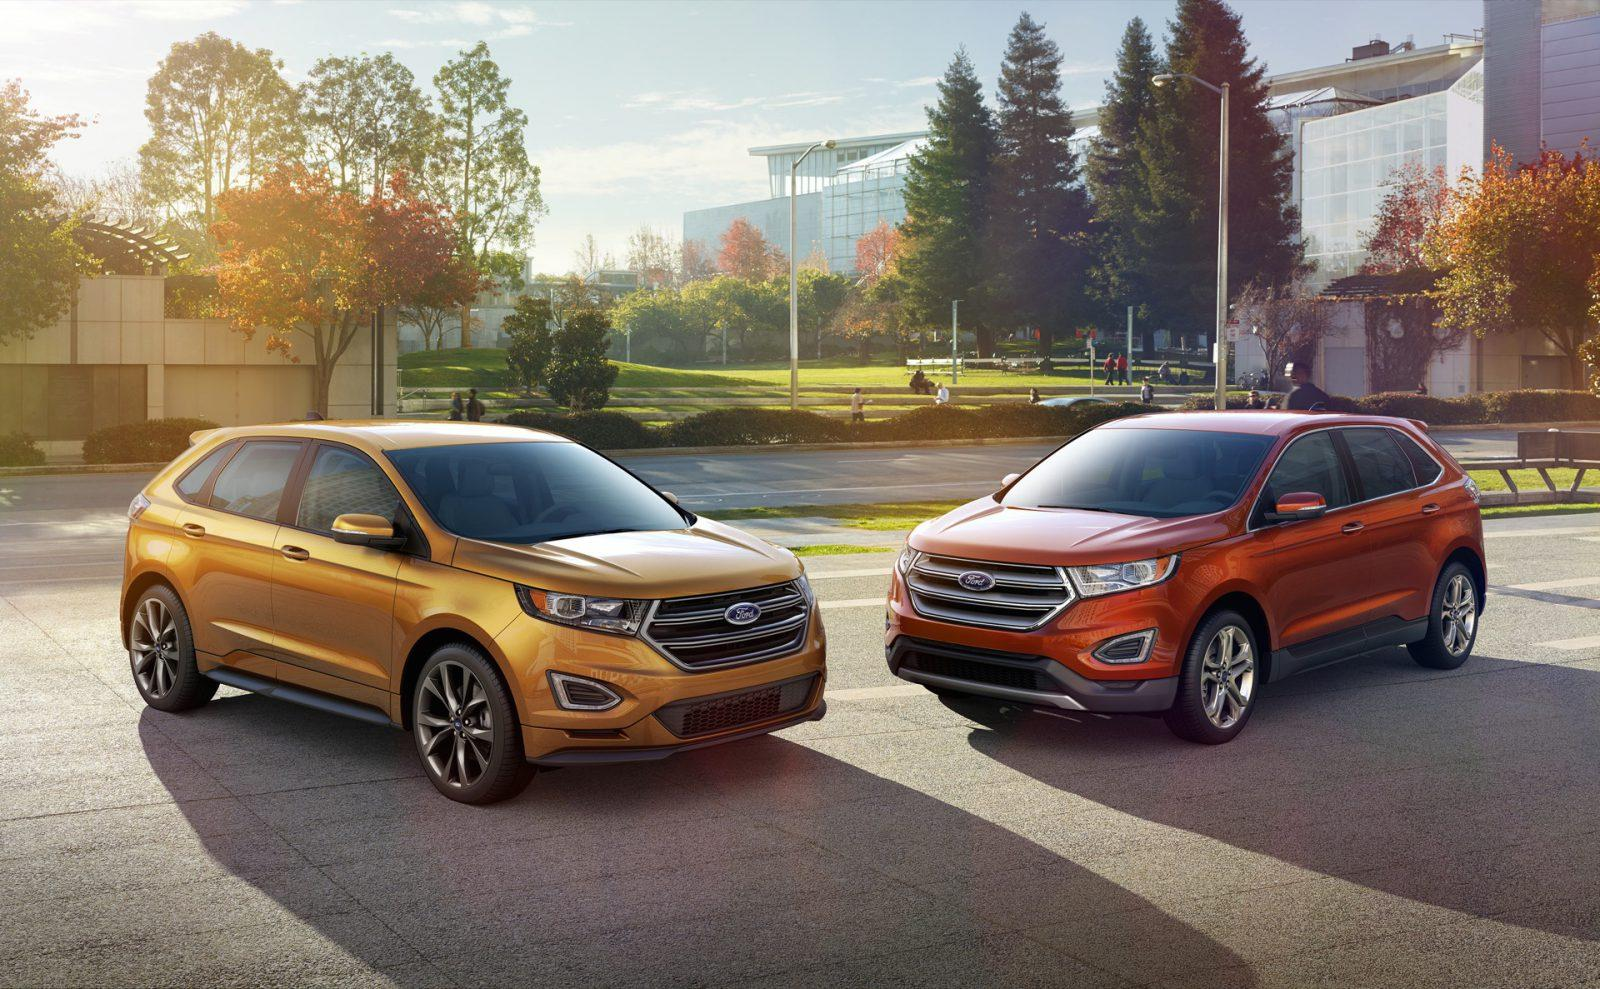 Ford Edge Vs Ford Escape >> The Truth About The Differences Between Ford Edge Vs Ford Escape